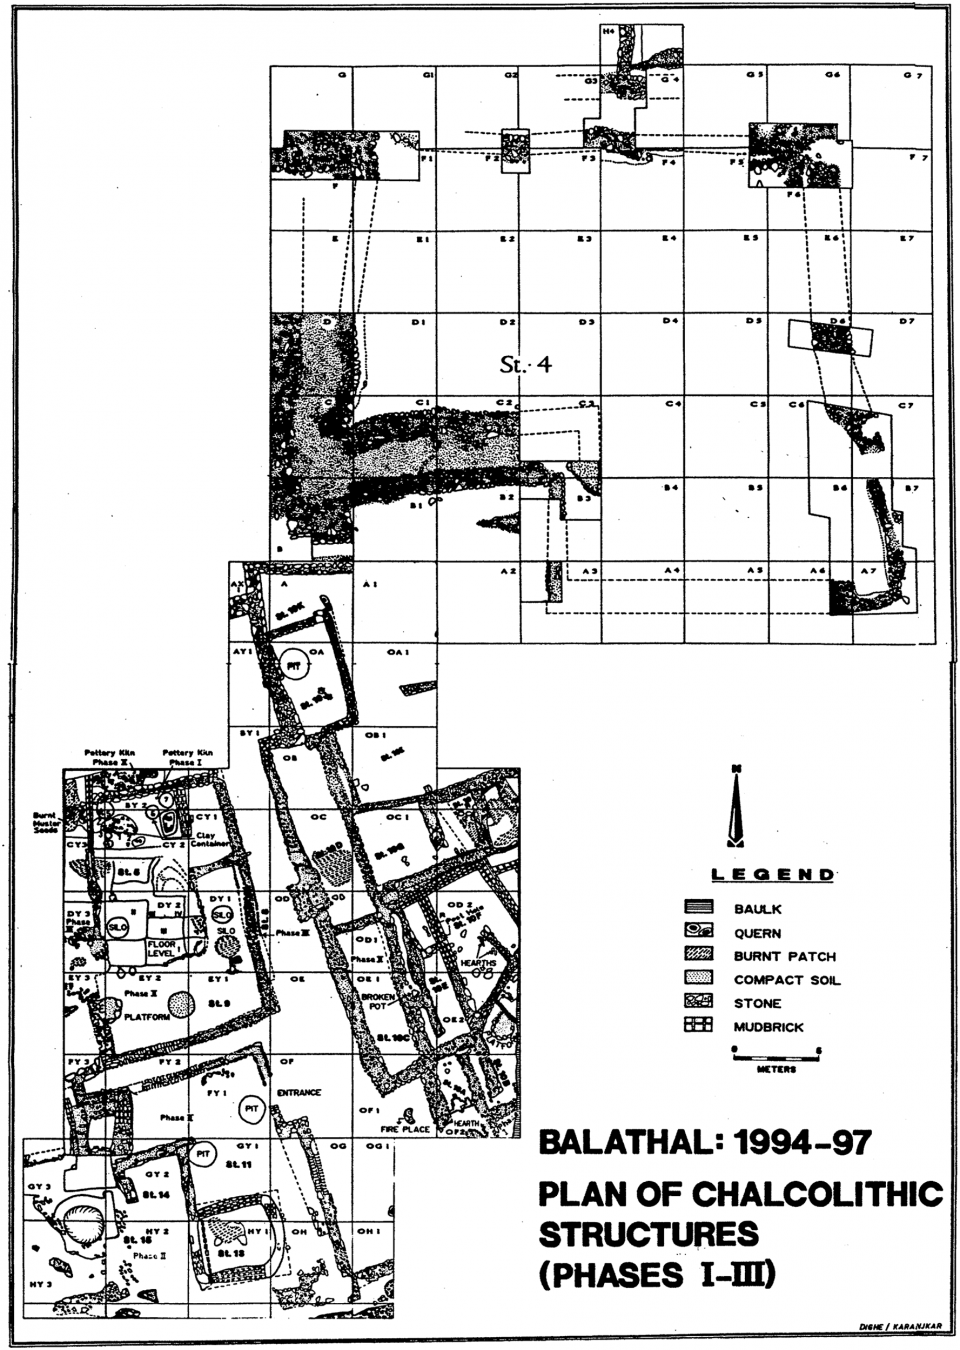 Figure 2. Plan view of the Chalcolithic occupation at the site of Balathal.